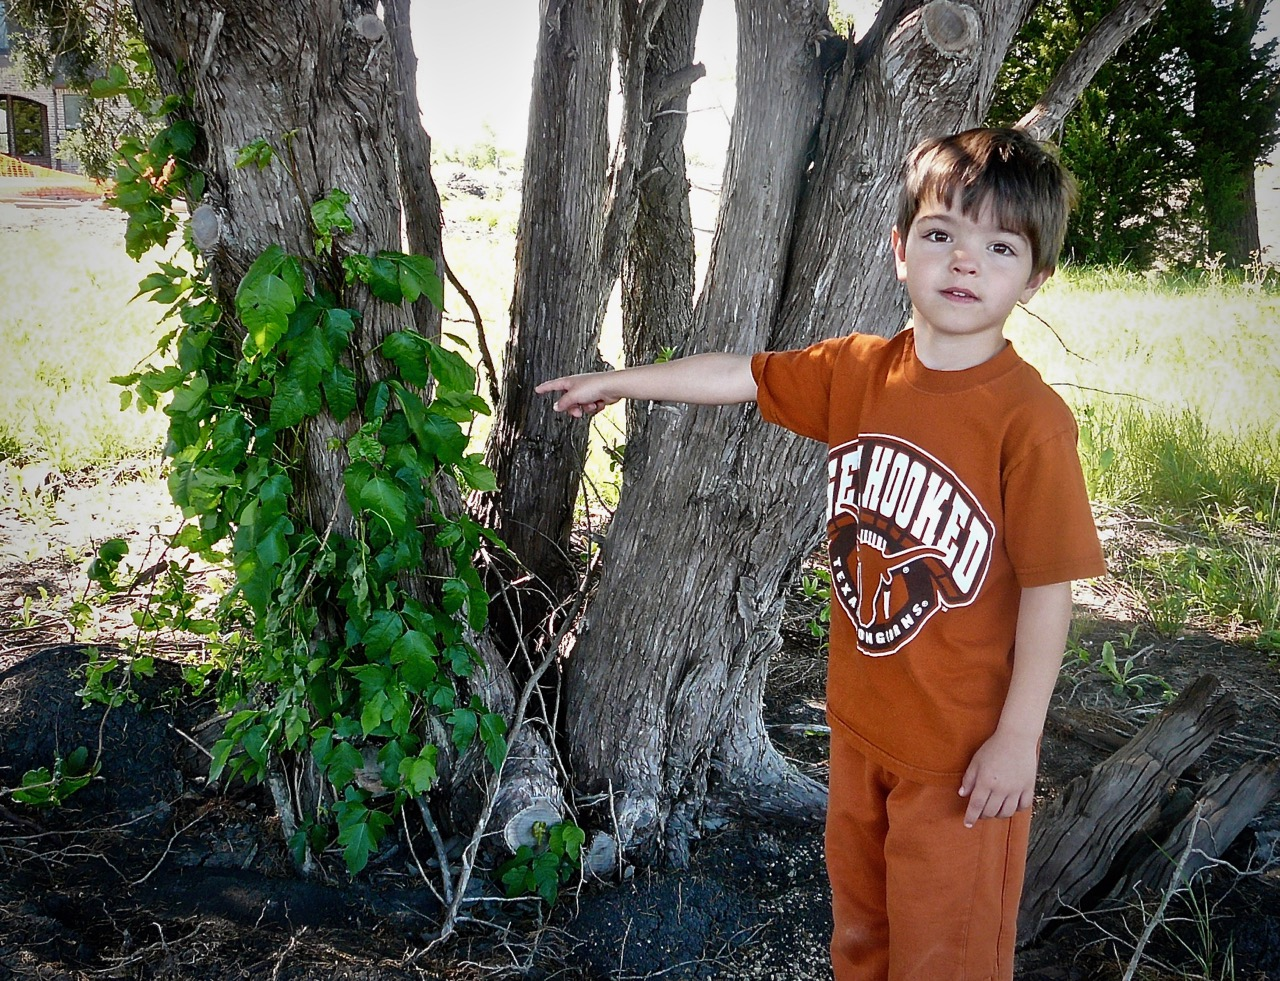 Poison ivy growing on a tree, ready to give your kids a rash.